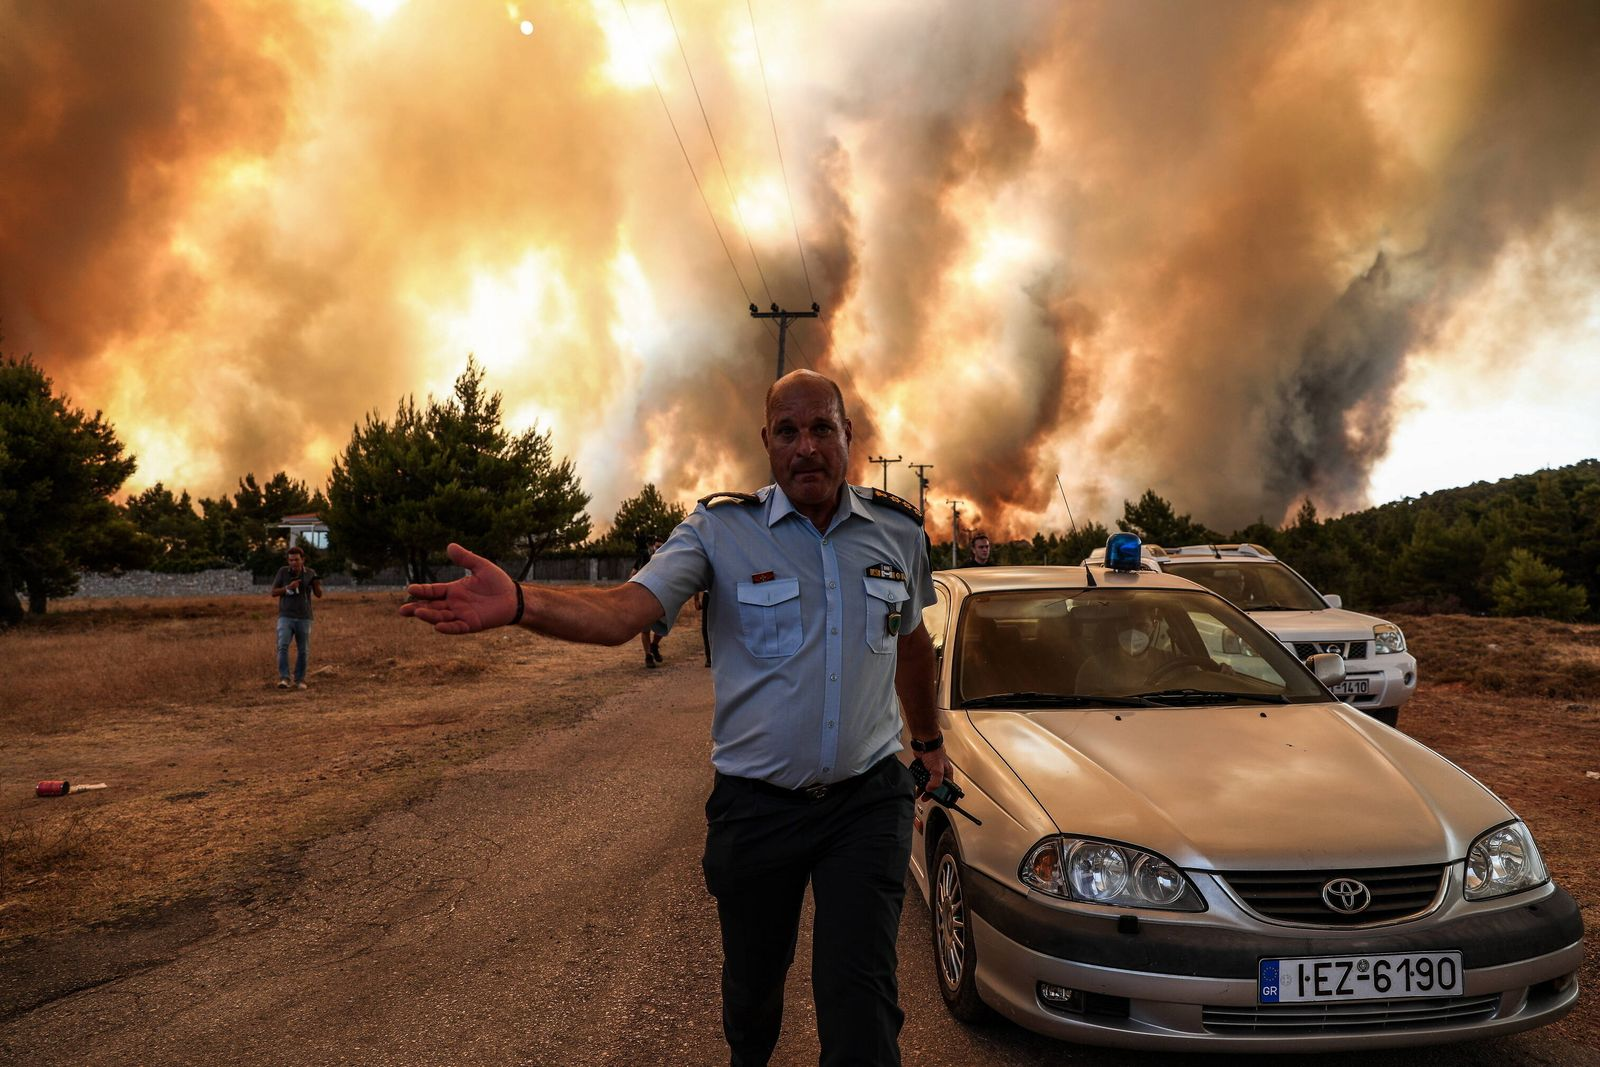 August 5, 2021, Athens, Greece: A view of a wildfire burning the area of Drossopigi, Varybobi, northeastern suburb of A